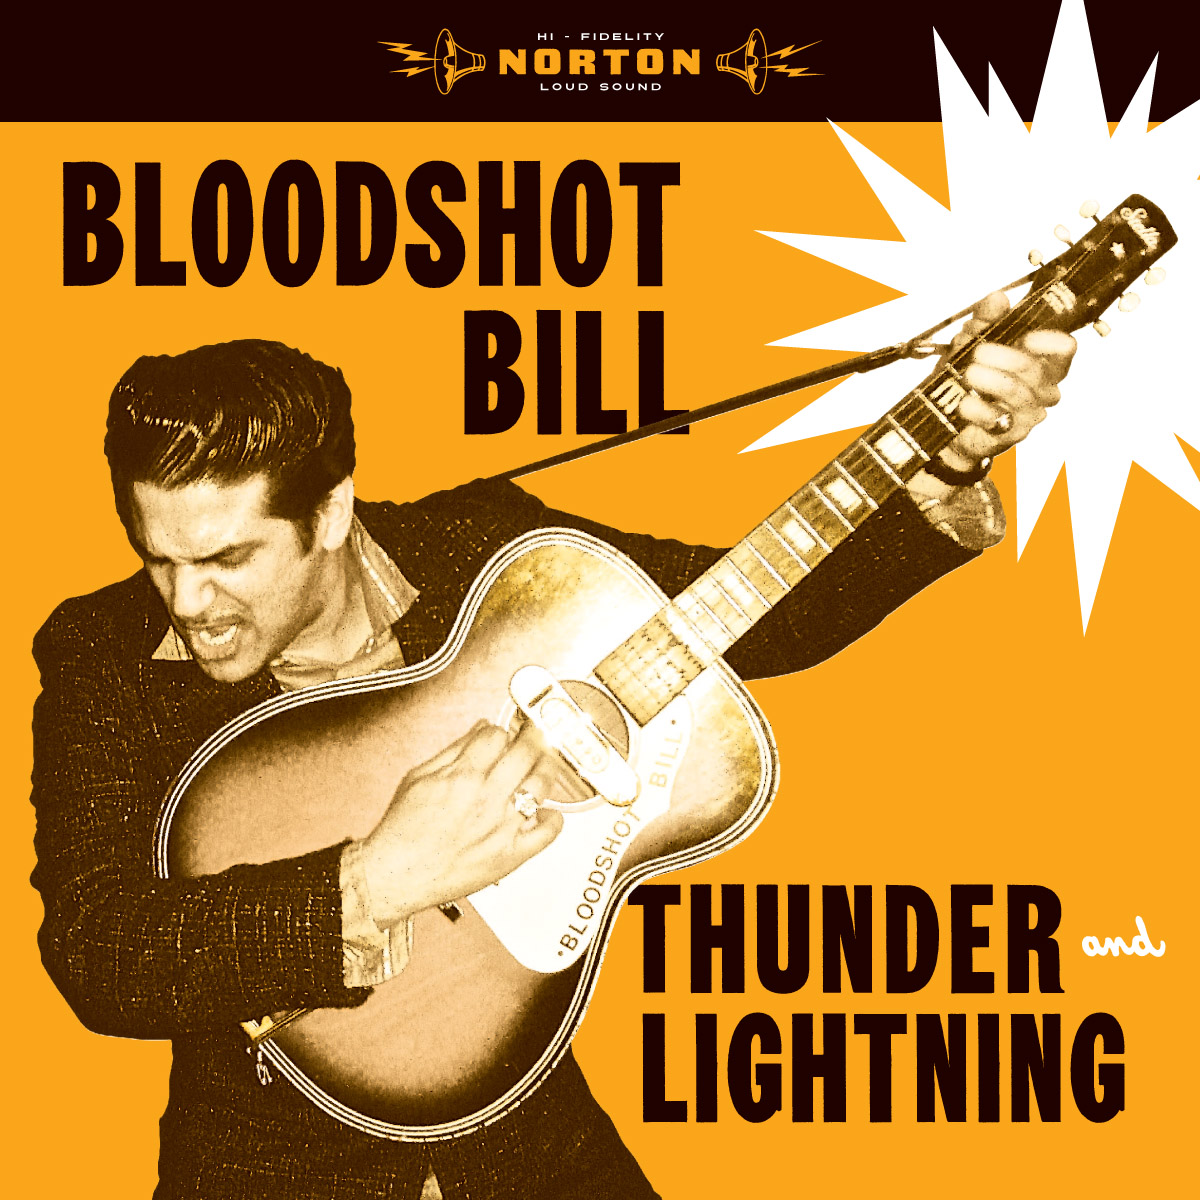 Bloodshot Bill - Thunder and Lightning LP sleeve